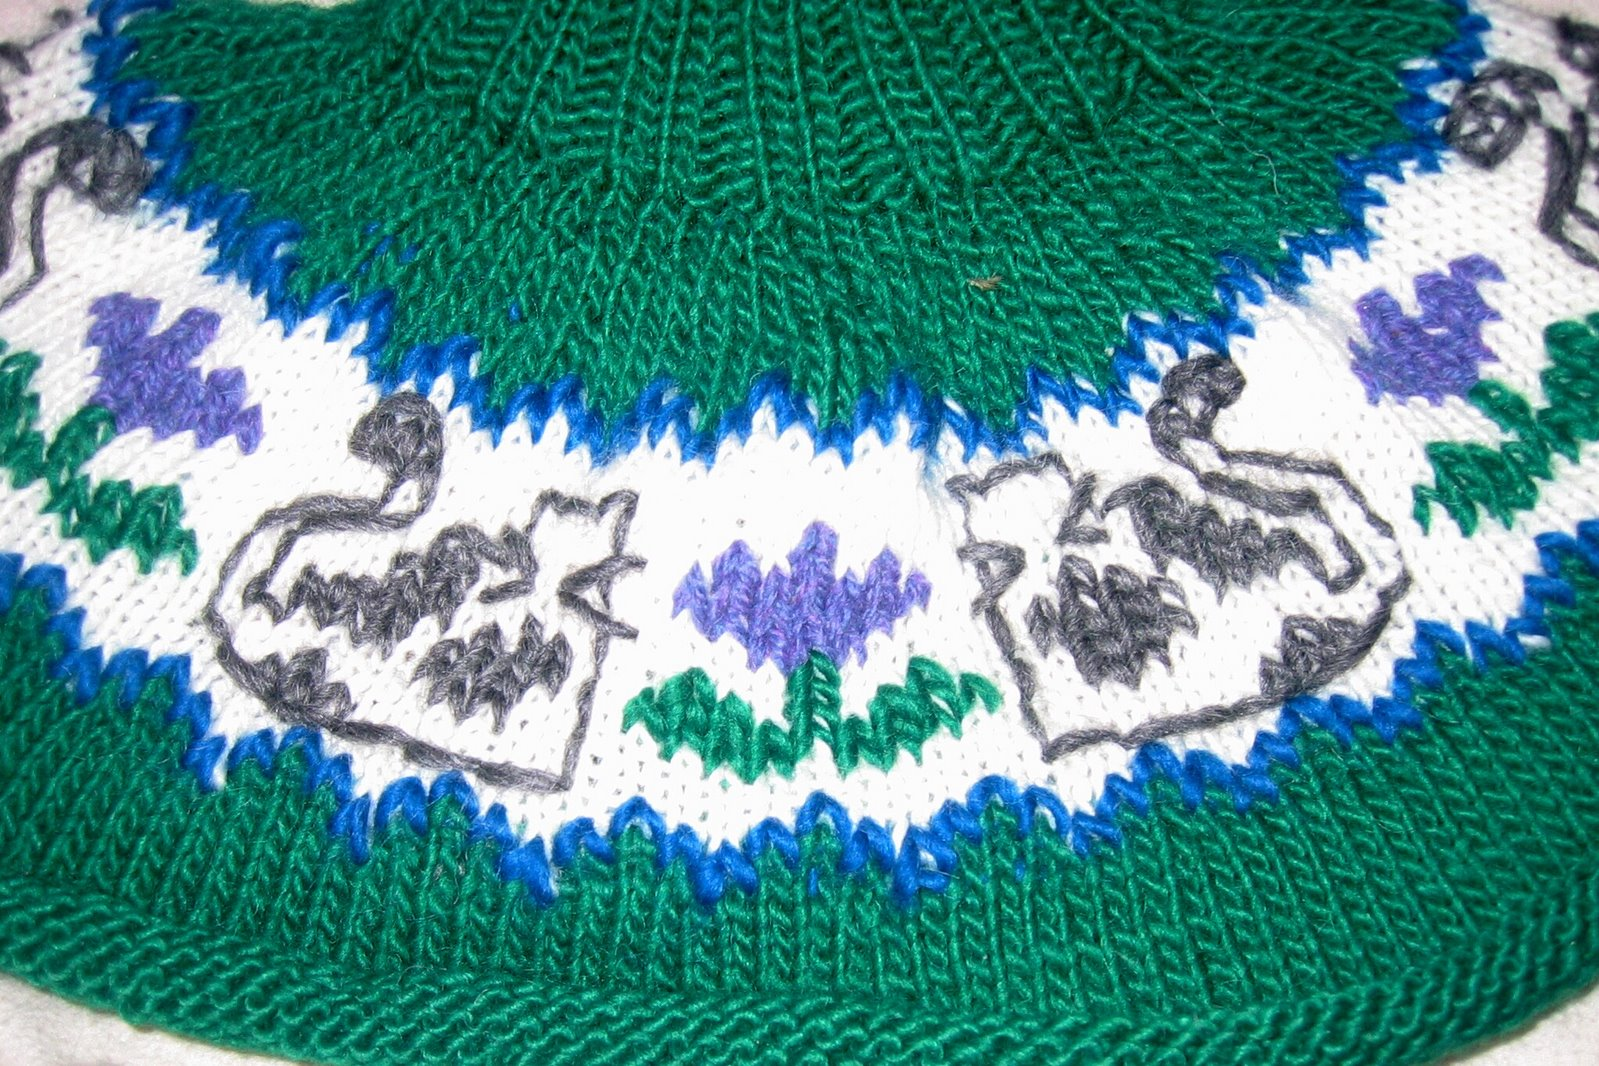 Duplicate Stitch Patterns For Knitting : Knitting Outside the Lines: Intarsia versus Duplicate Stitch